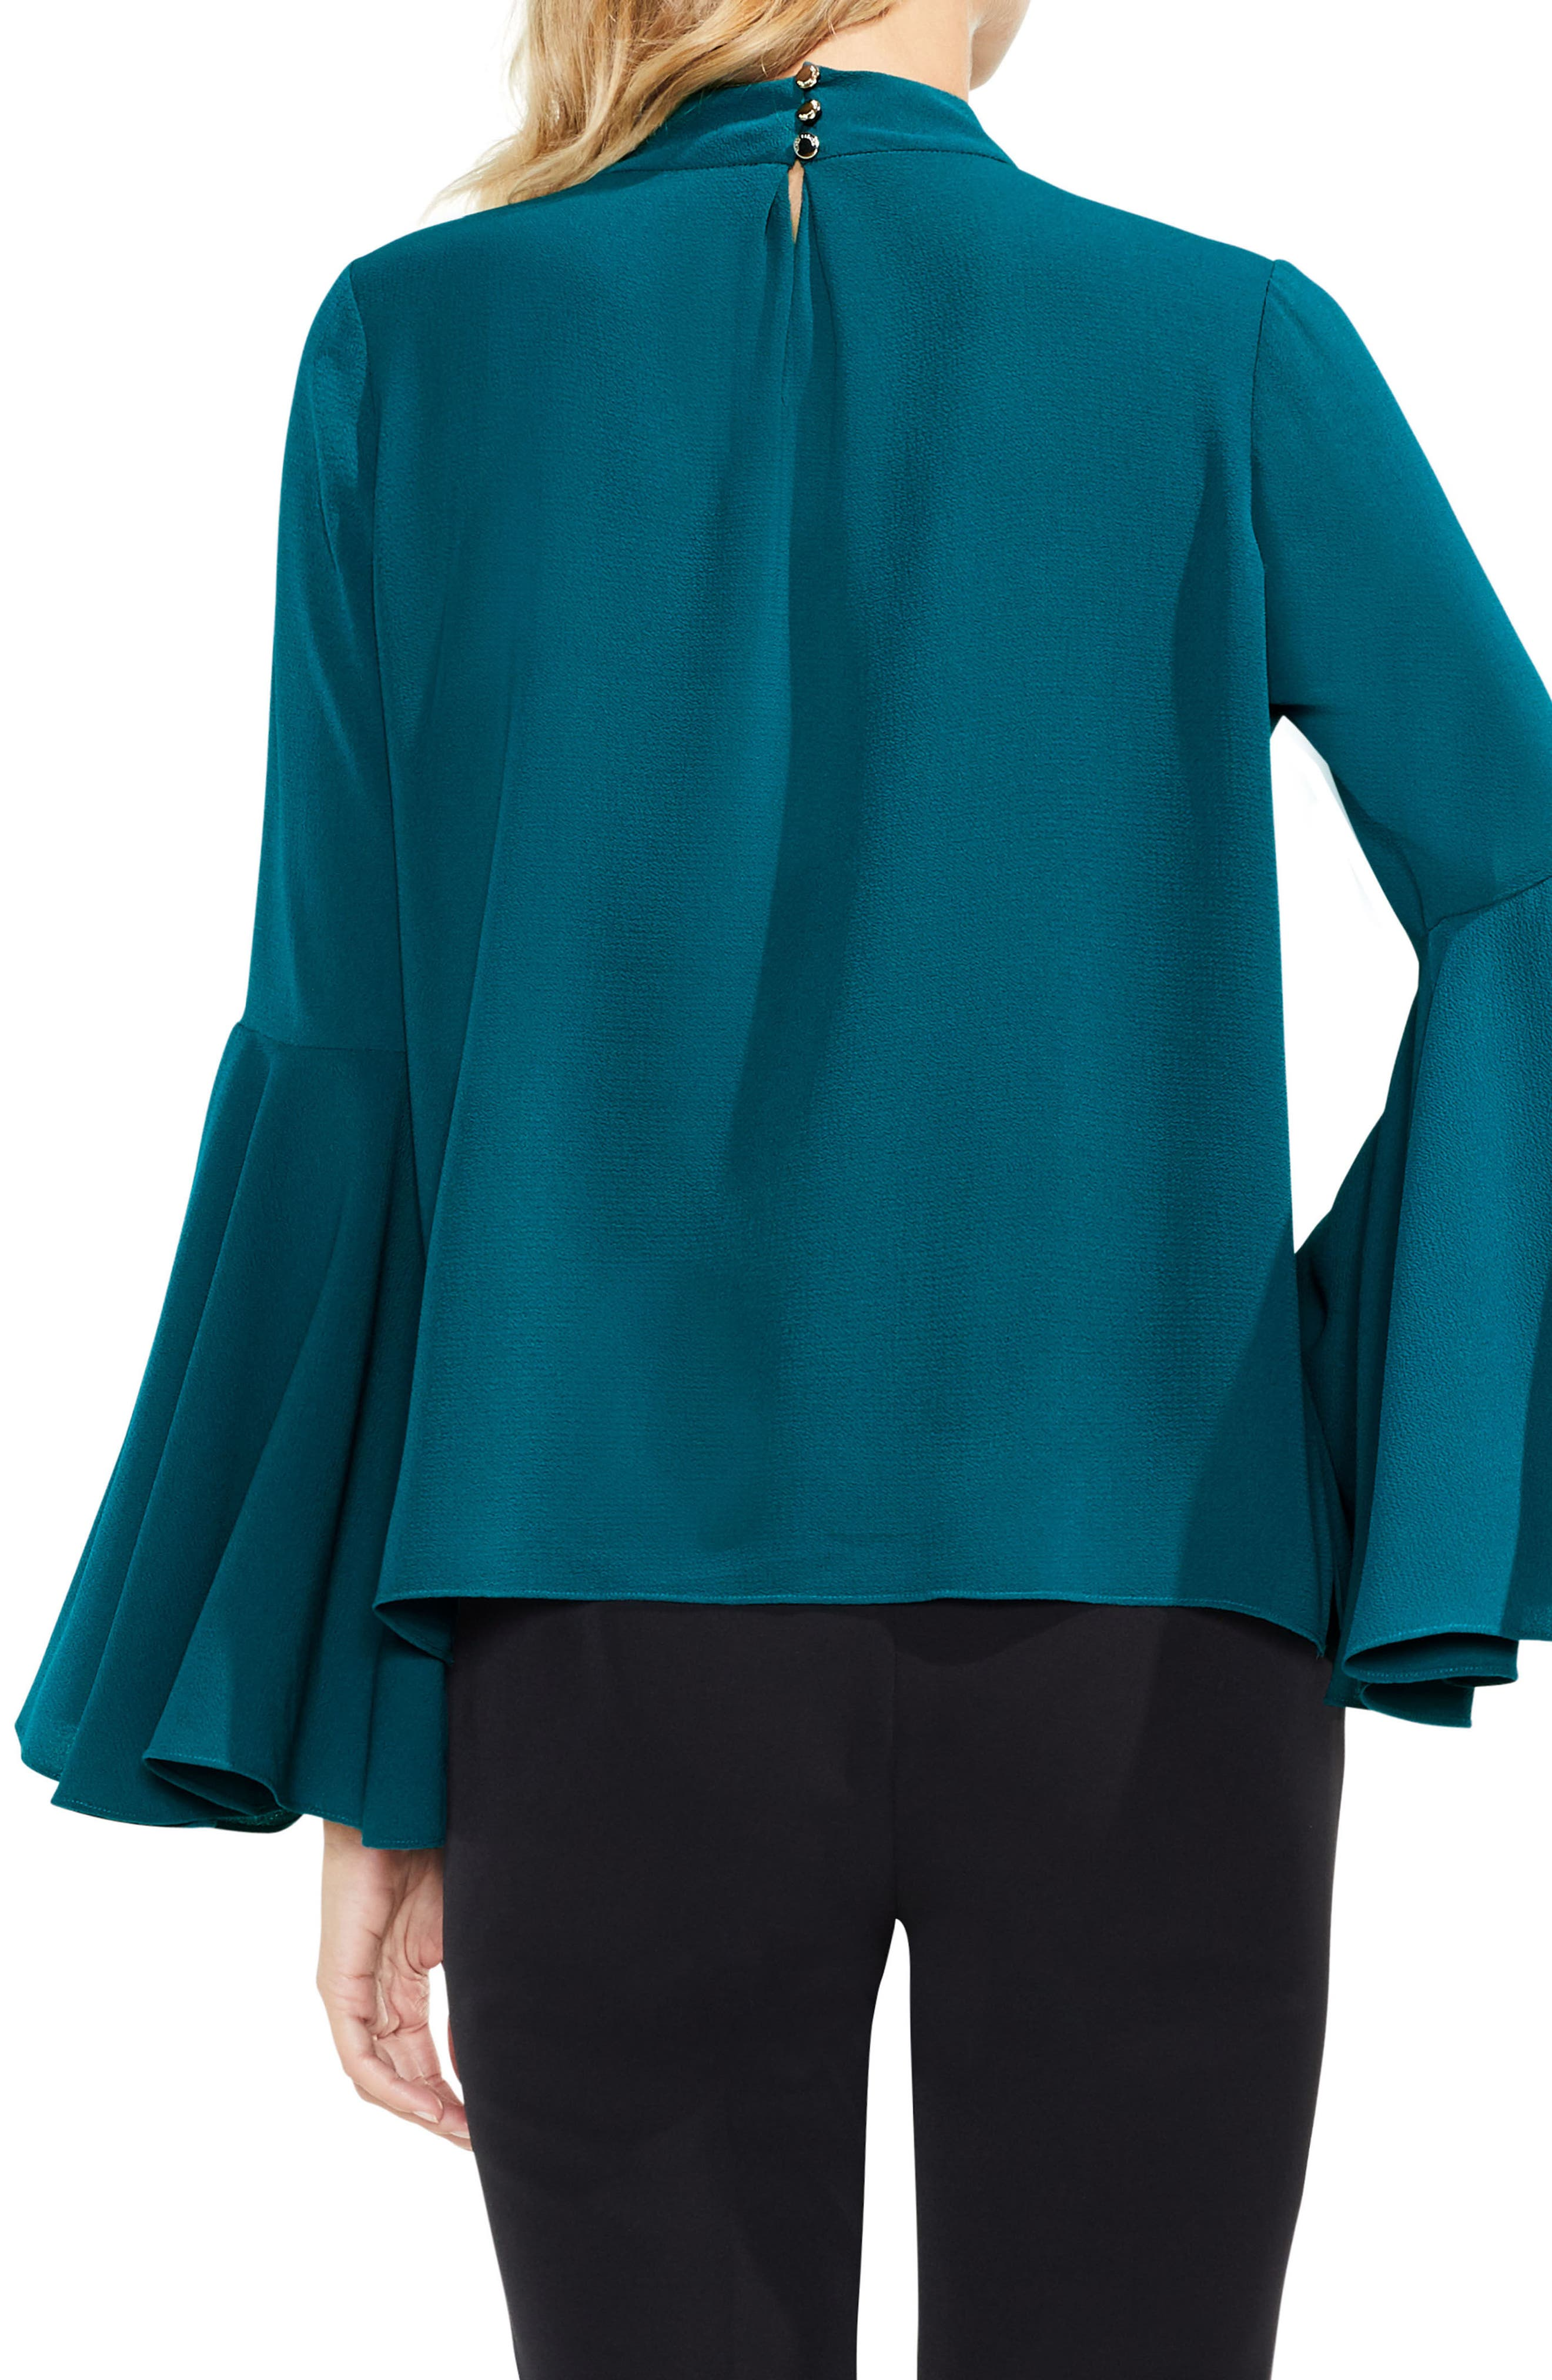 Bell Sleeve Choker Neck Blouse,                             Alternate thumbnail 2, color,                             Dark Peacock